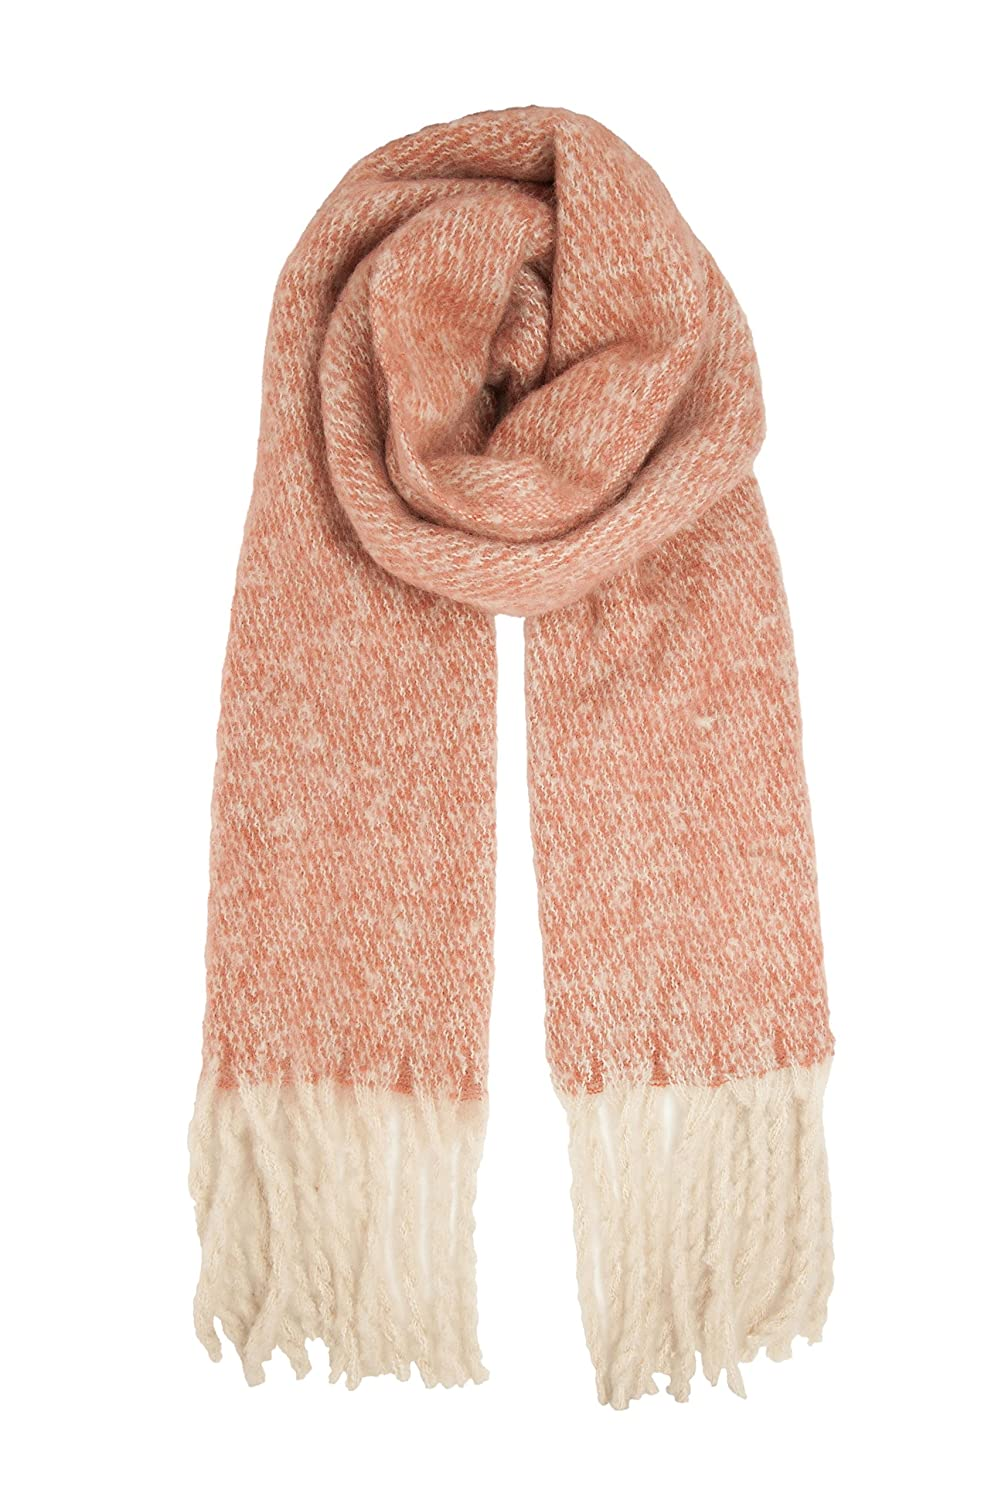 Blush and White Colour Herringbone Mohair Look Fringed Scarf